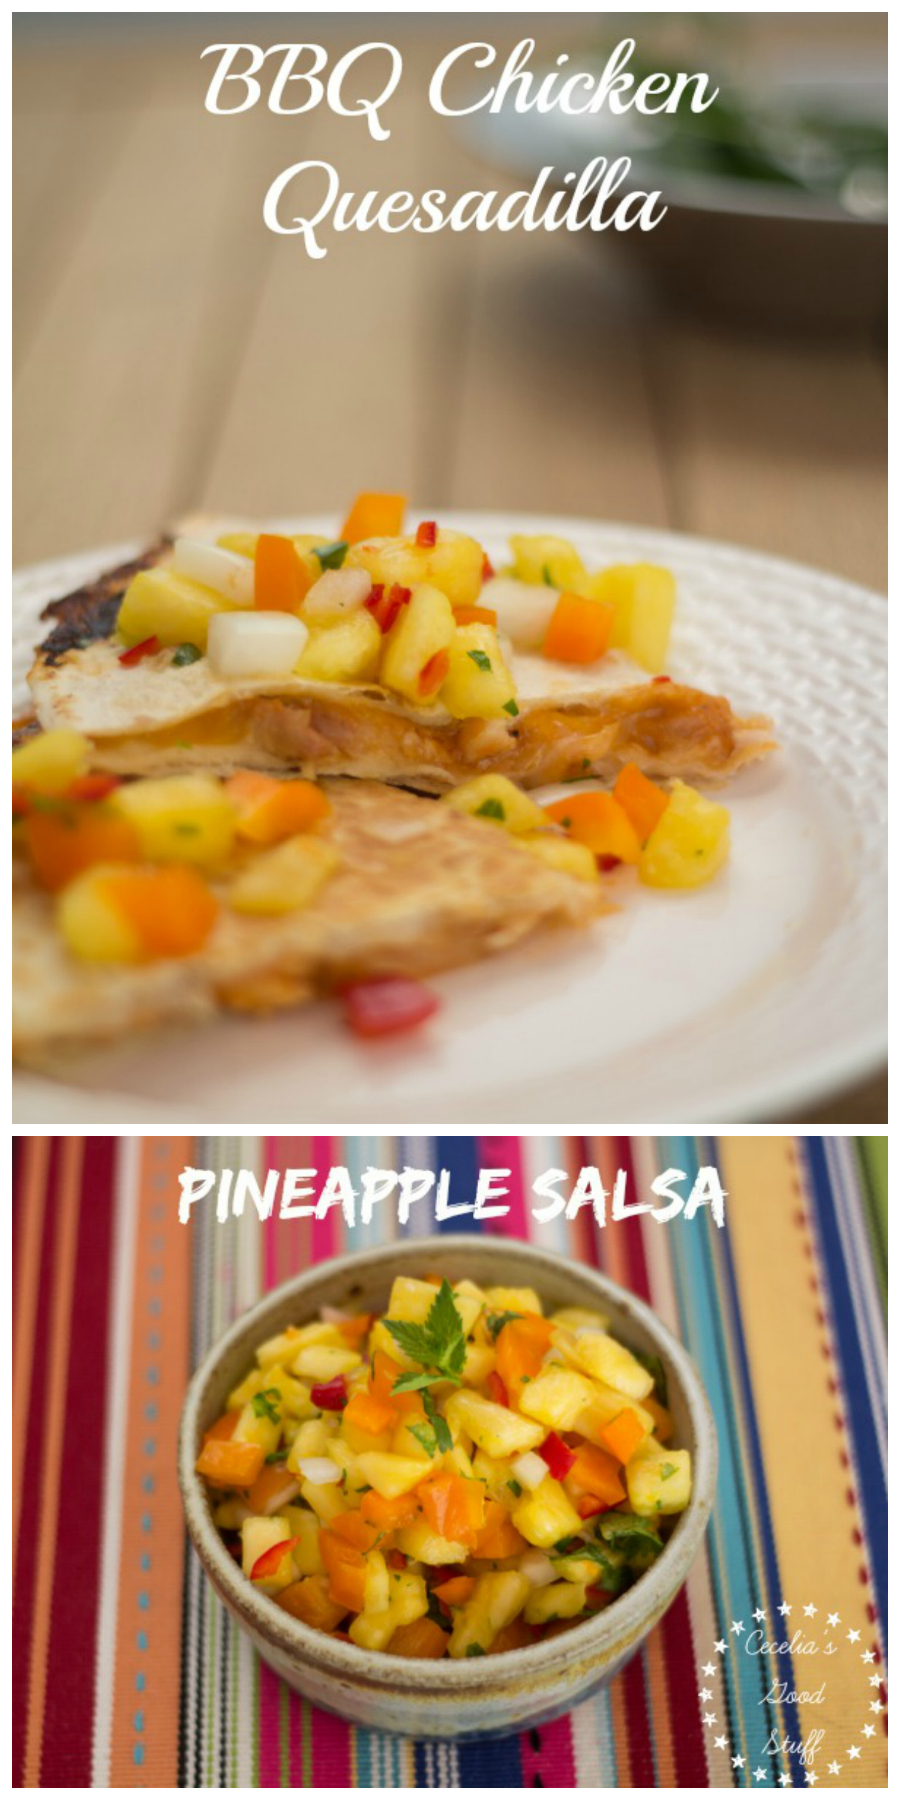 Barbecue Chicken Quesadillas with Pineapple Salsa | CeceliasGoodStuff.com | Good Food for Good People